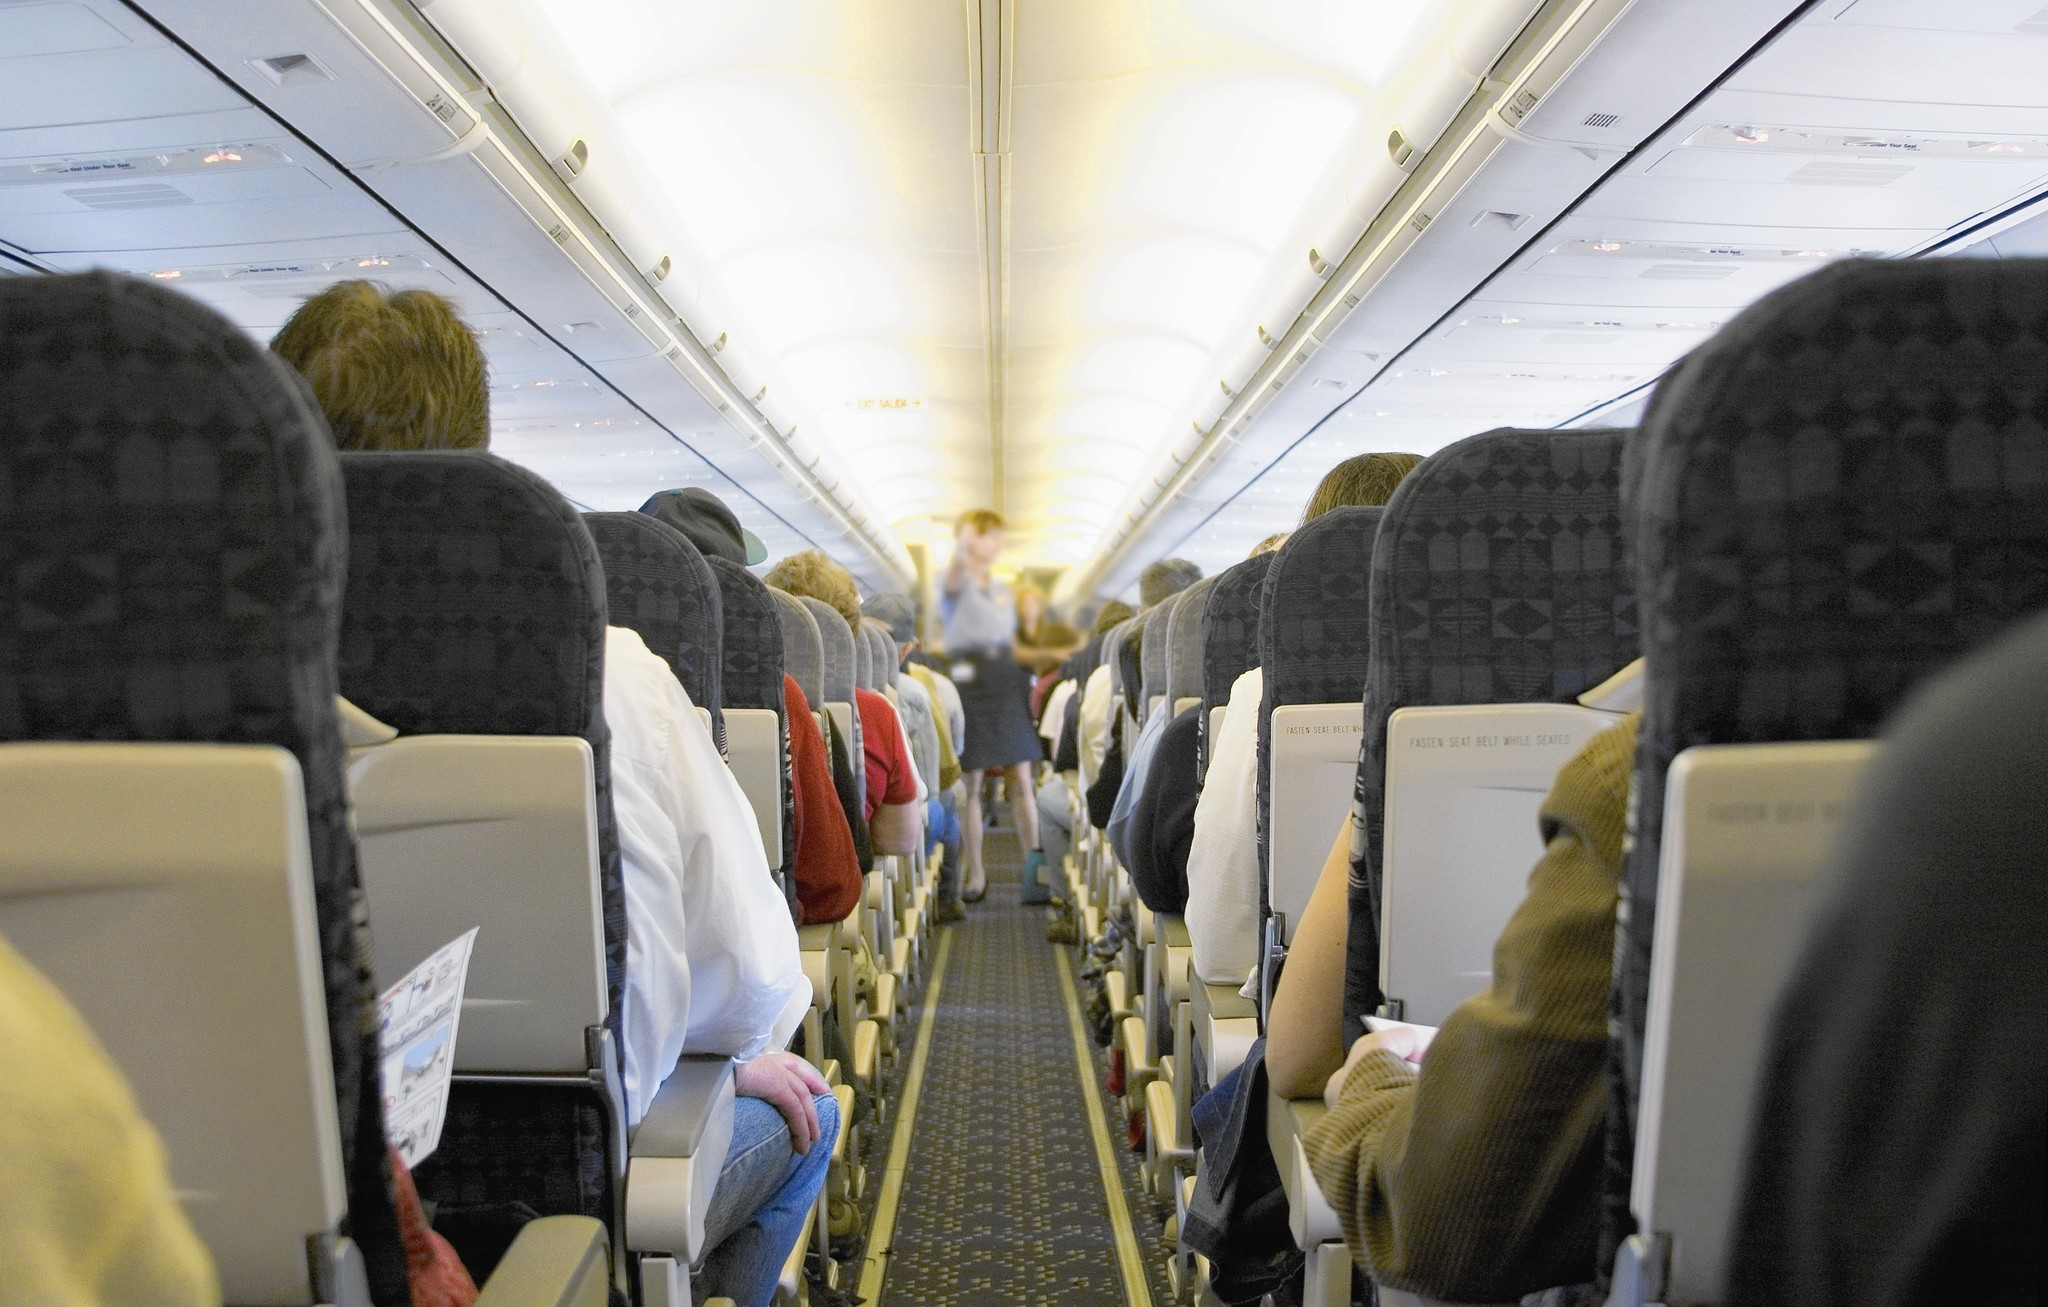 How to deal with someone invading your space on a plane